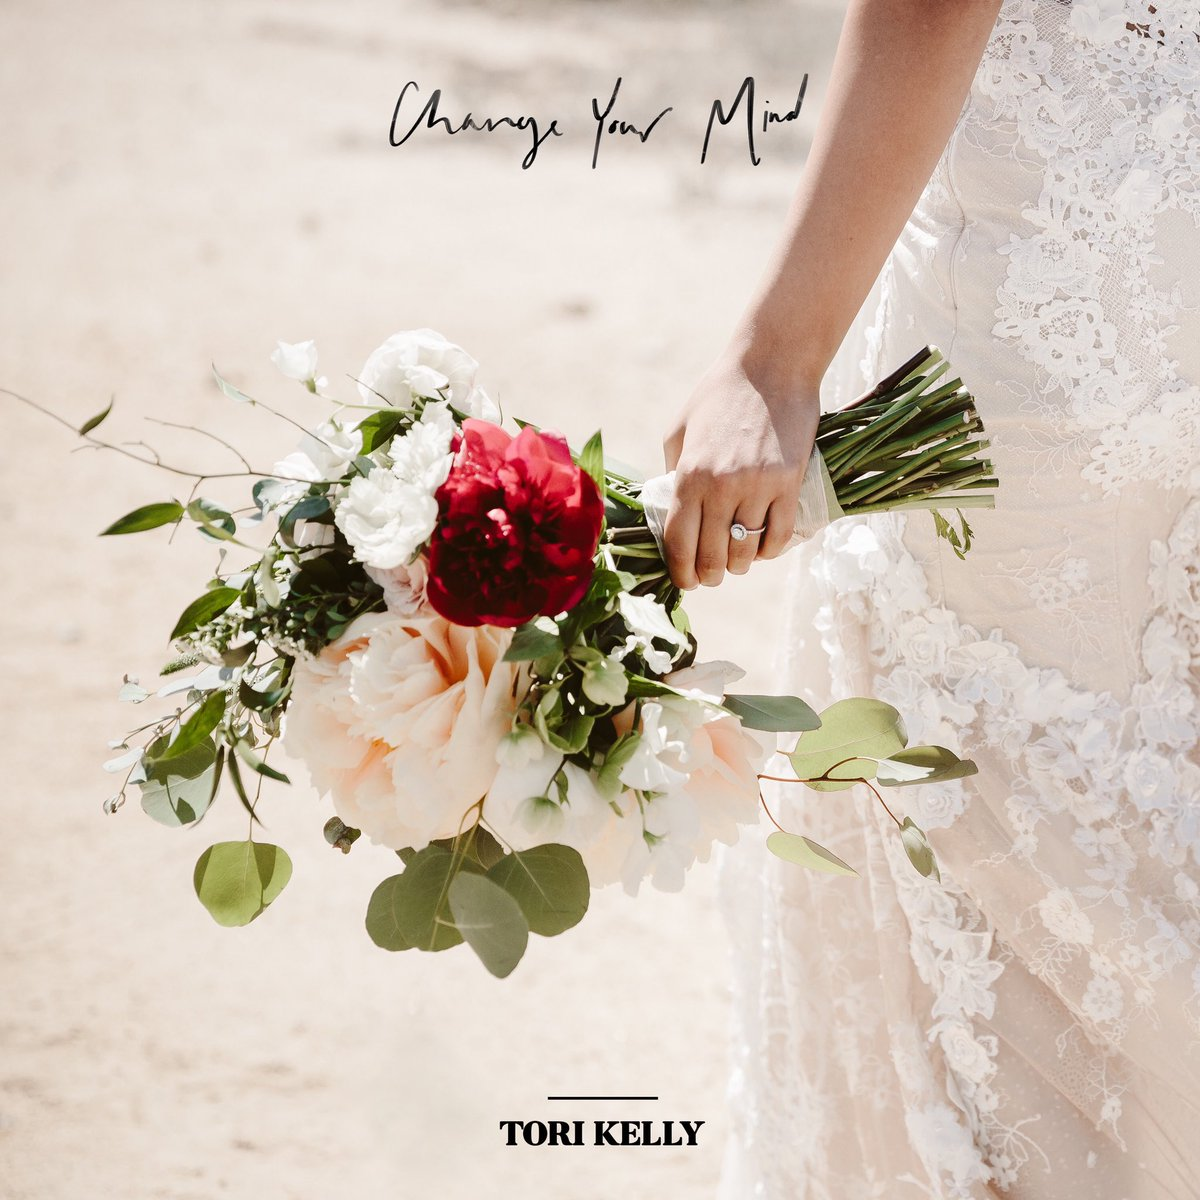 i have a lot of new music to share w/ you on tour... including my single 'Change Your Mind' dropping next friday🙈💐